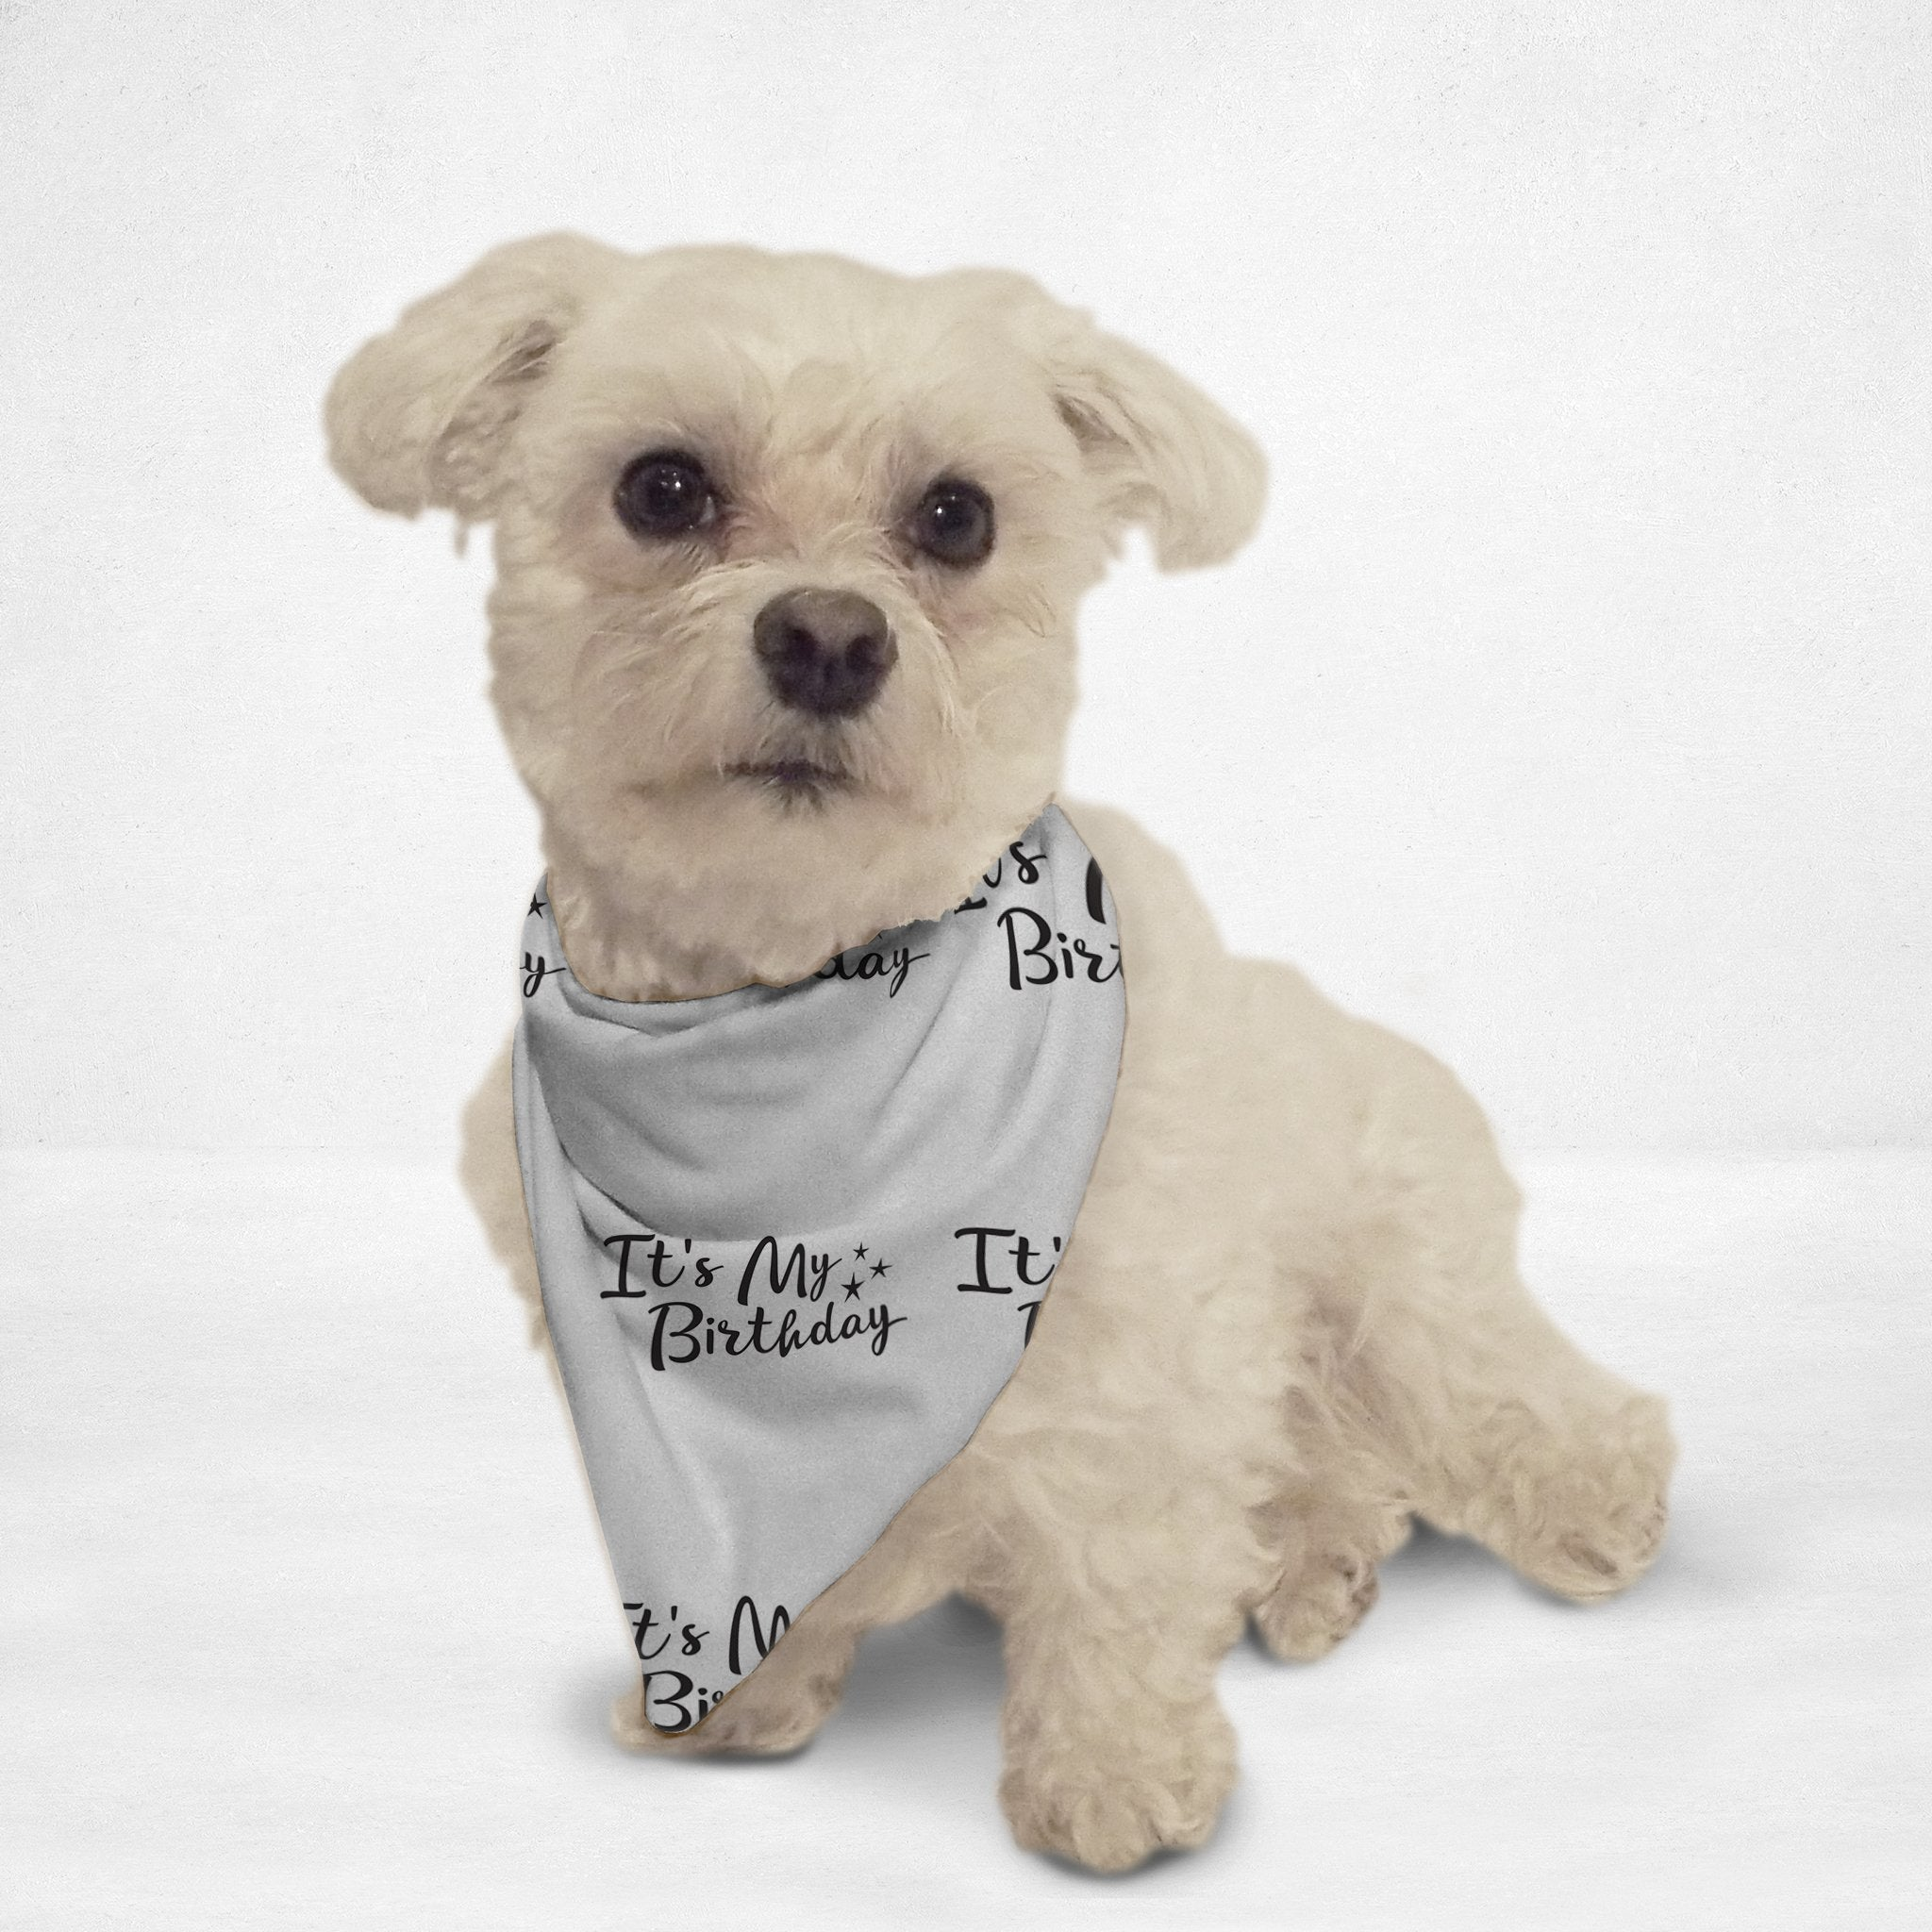 'It's My Birthday' Pet Bandana